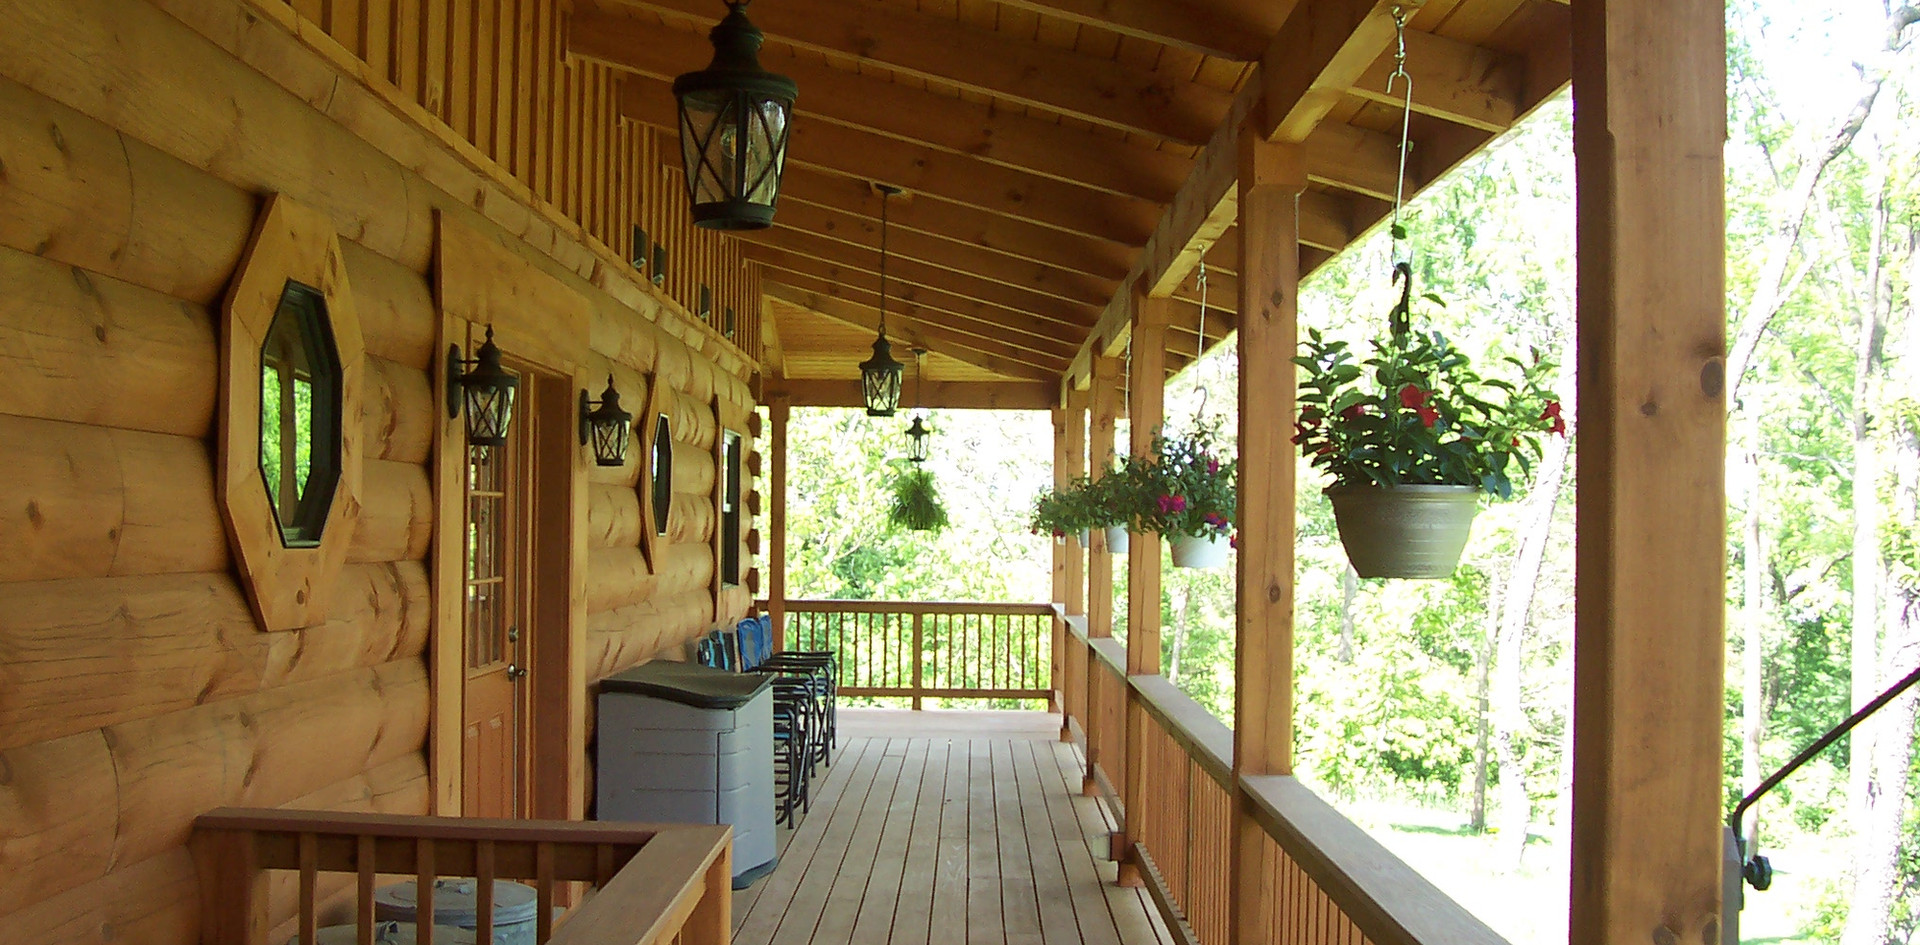 Click Herer For More Porches